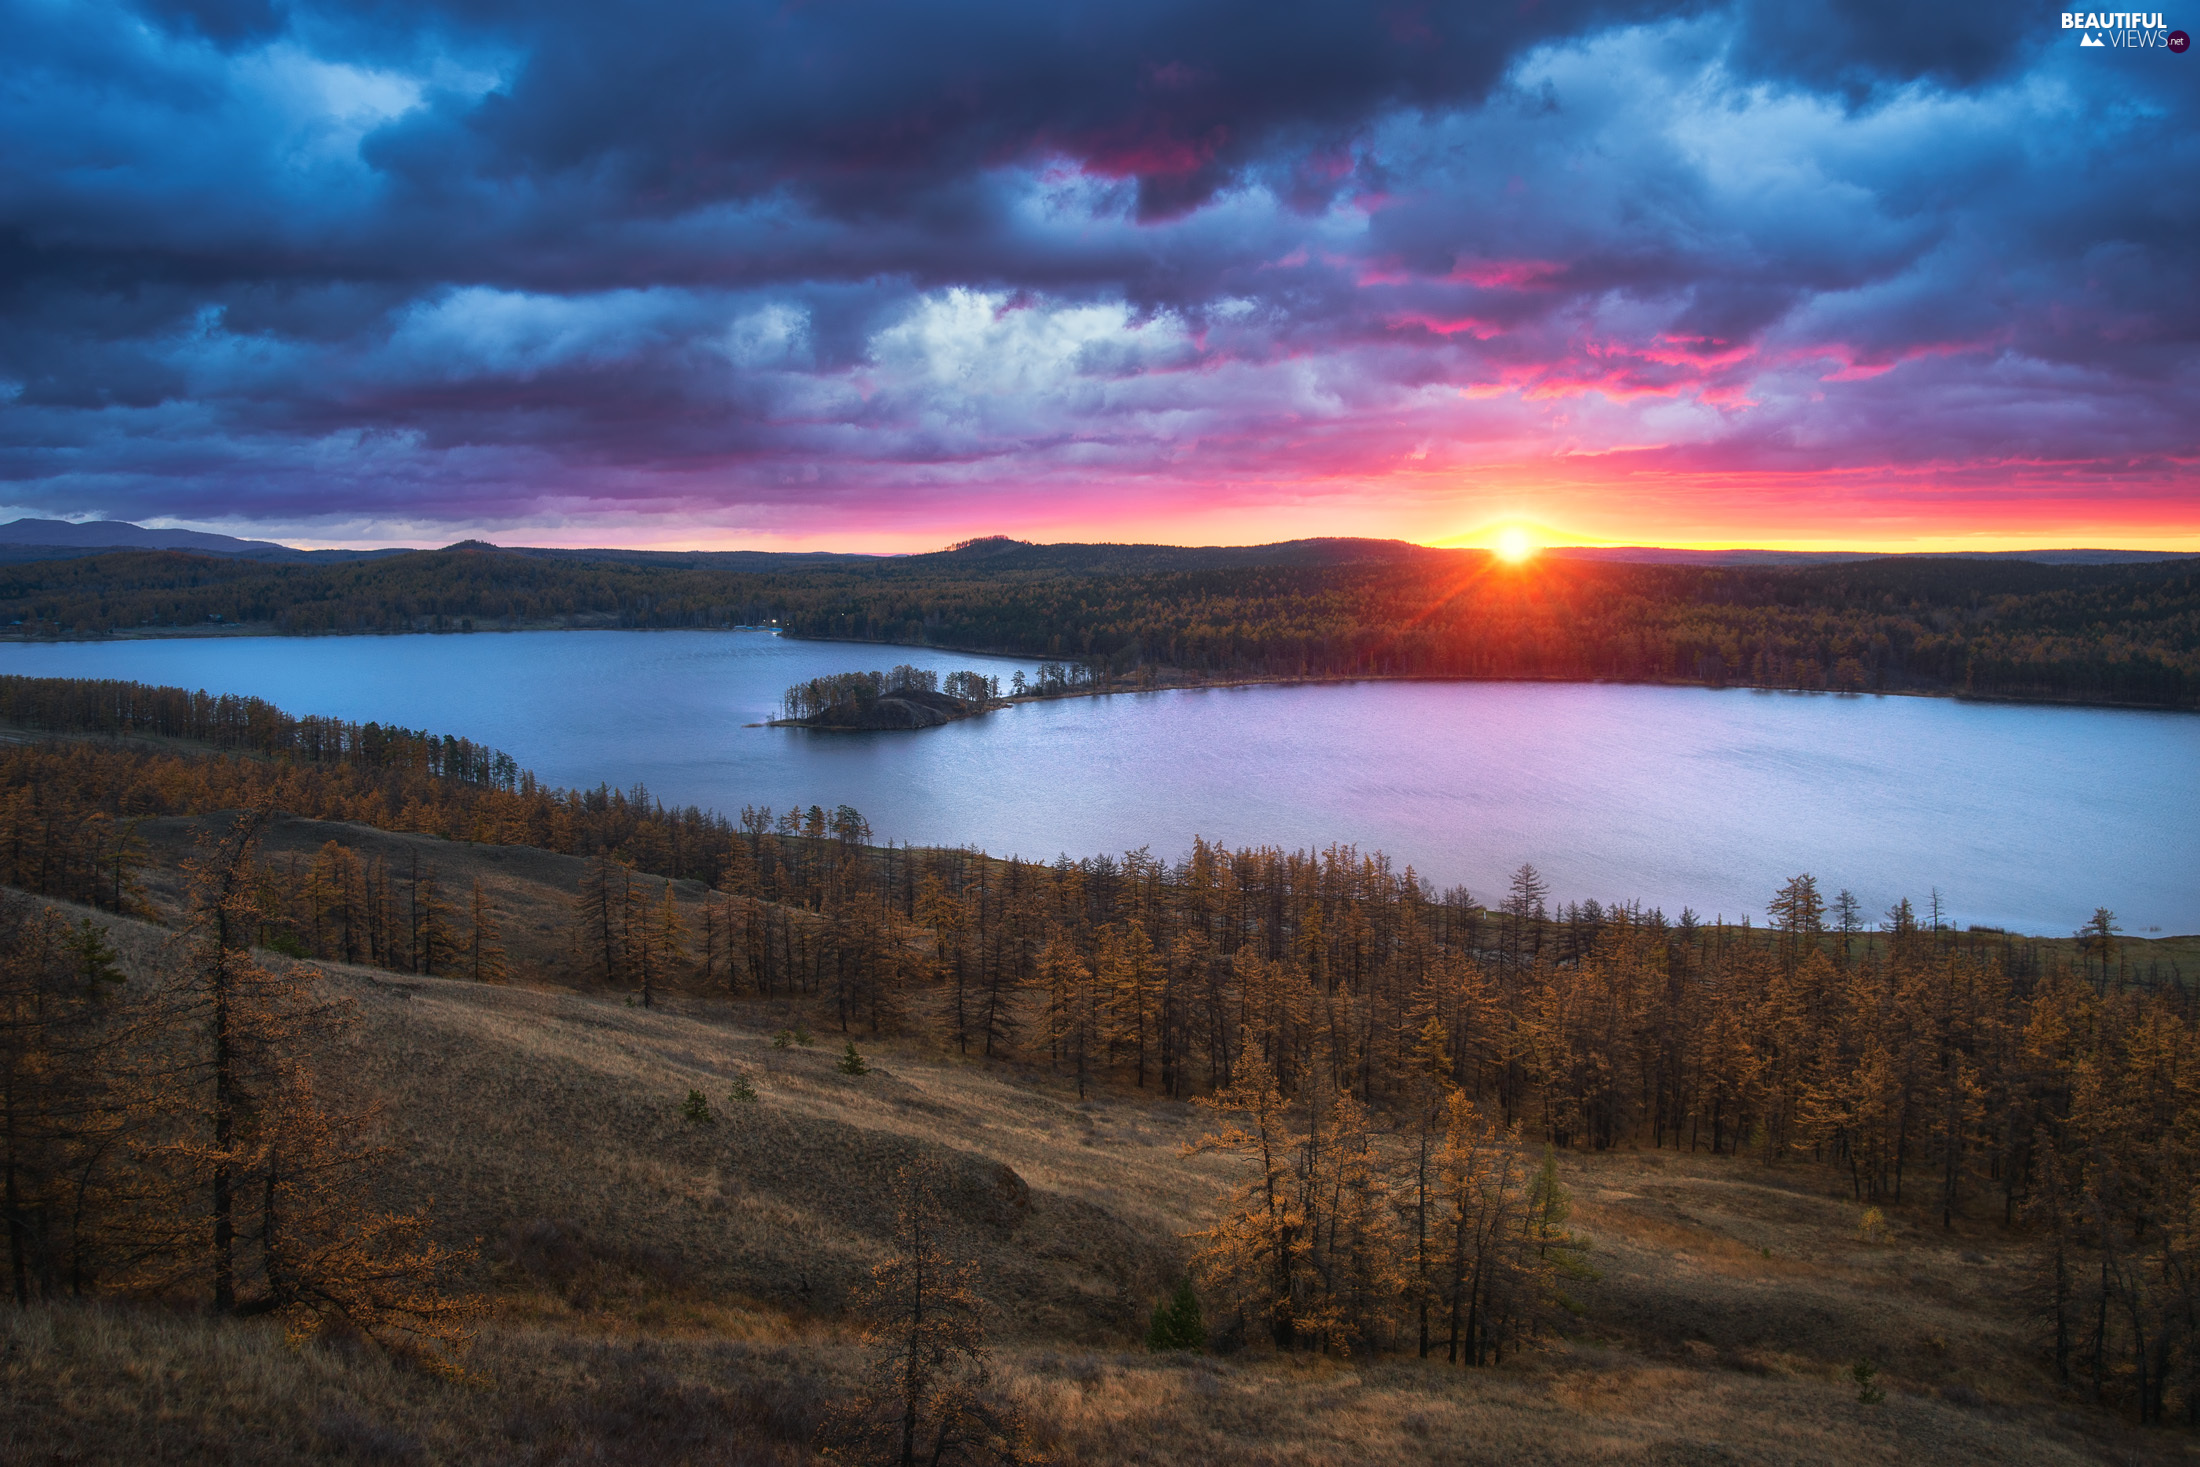 trees, lake, clouds, Great Sunsets, viewes, The Hills